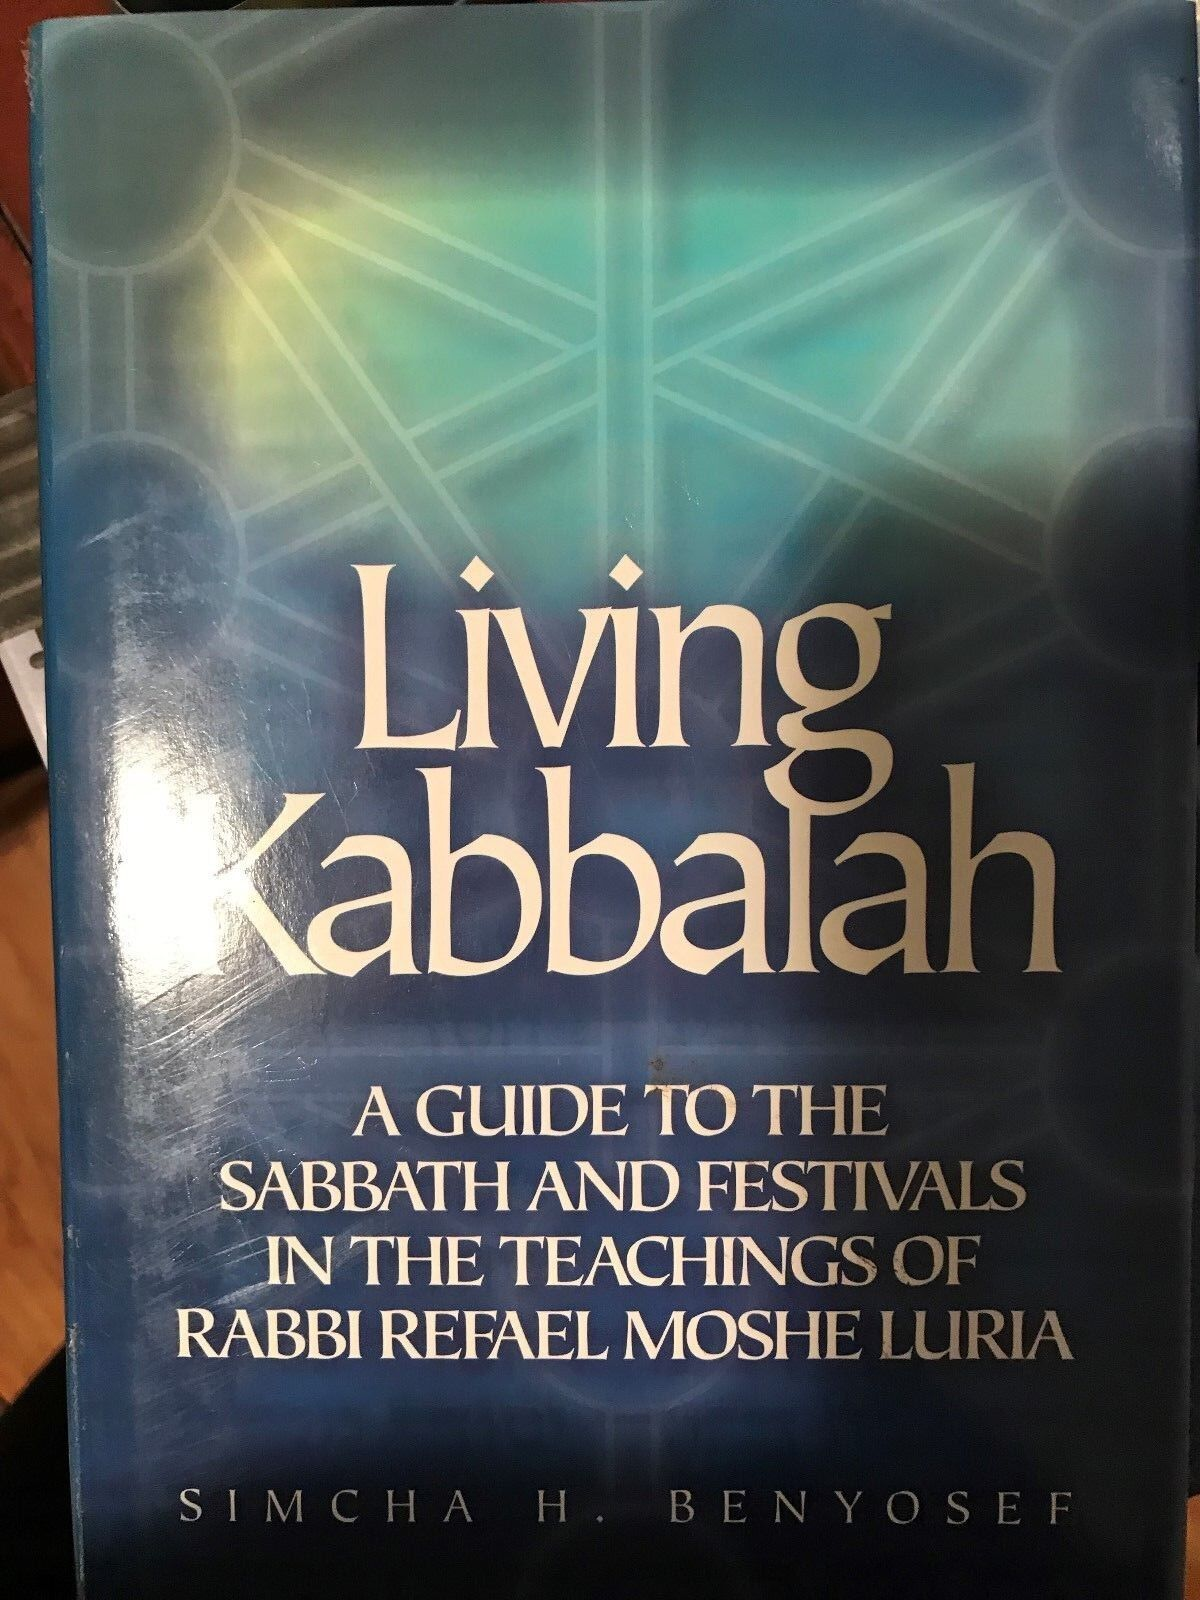 Living Kabbalah A Guide To The Sabbath And Festivals By Simcha Benyosef NEW  - $20.00